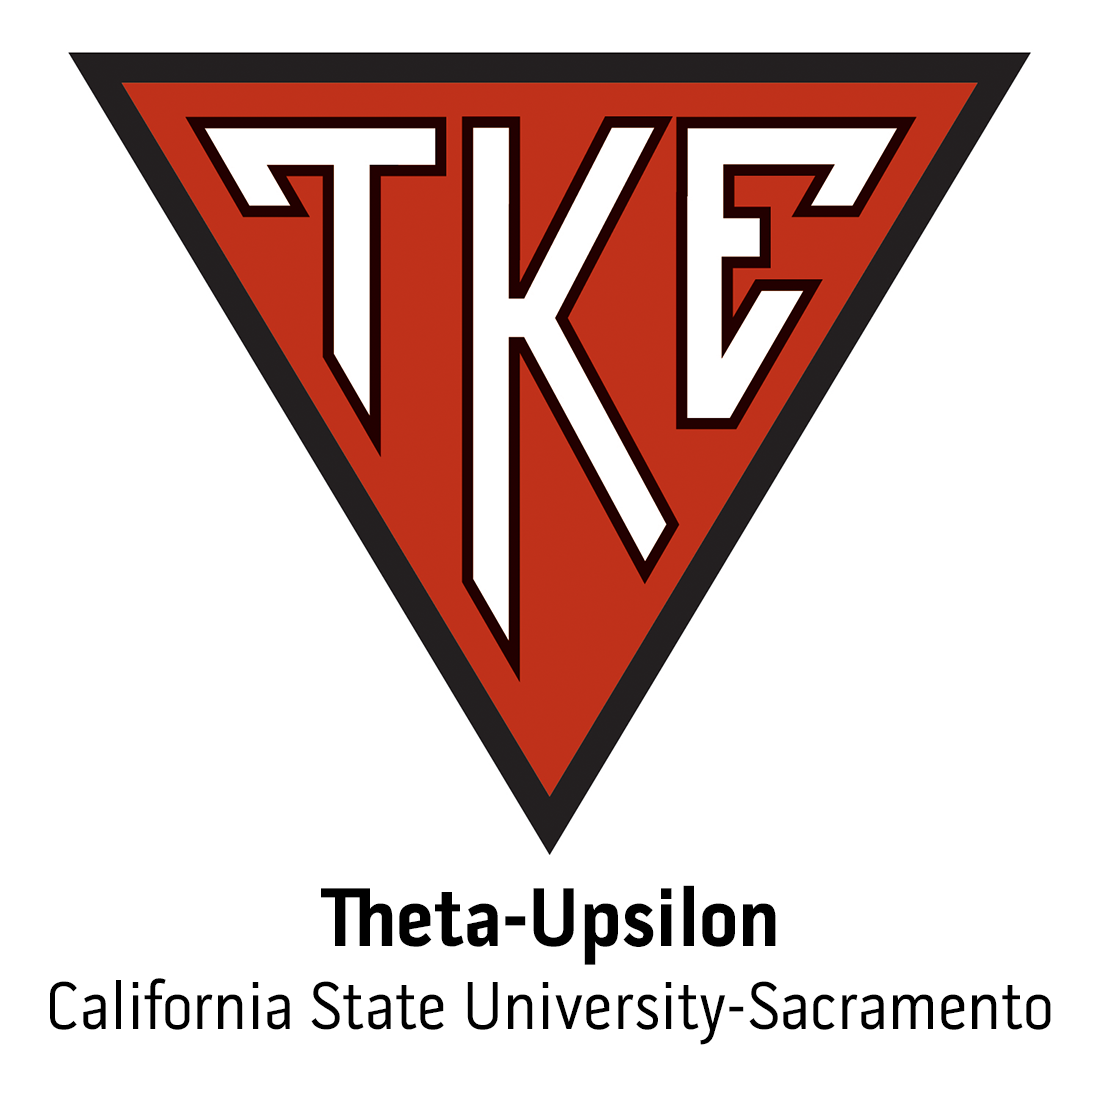 Theta-Upsilon Chapter at California State University, Sacramento